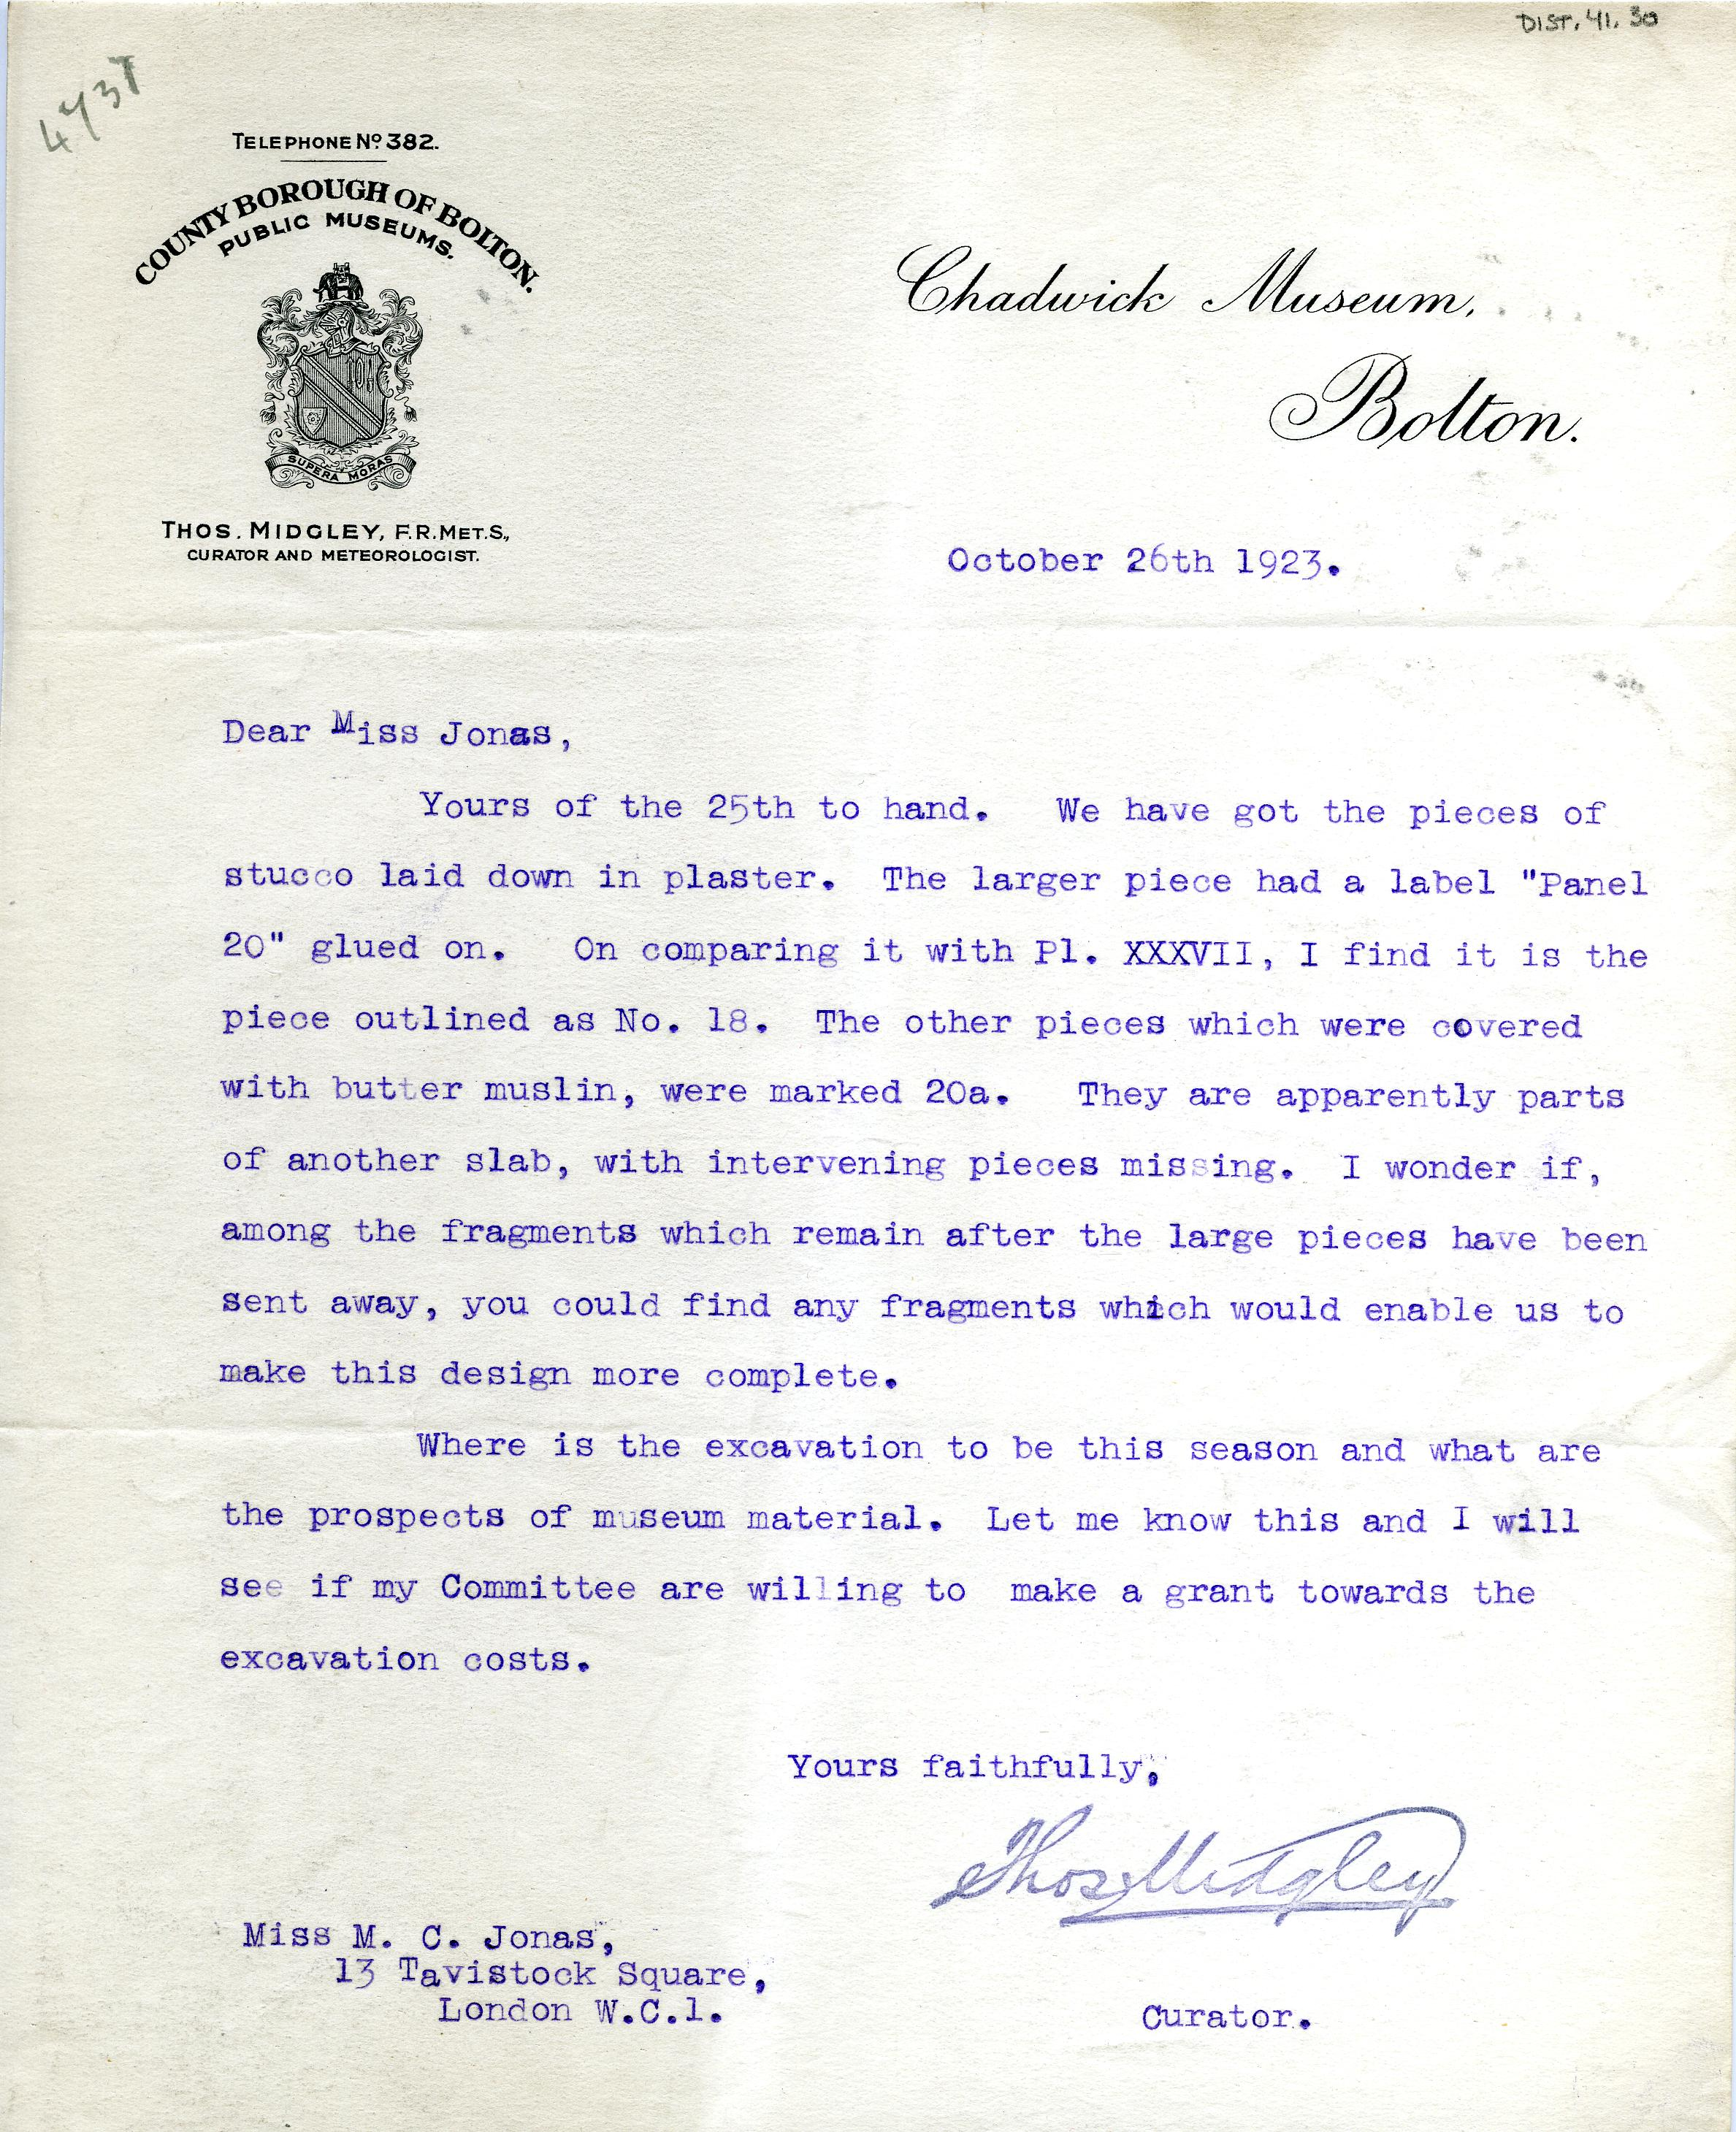 1922-76 Miscellaneous correspondence with museums DIST.41.30